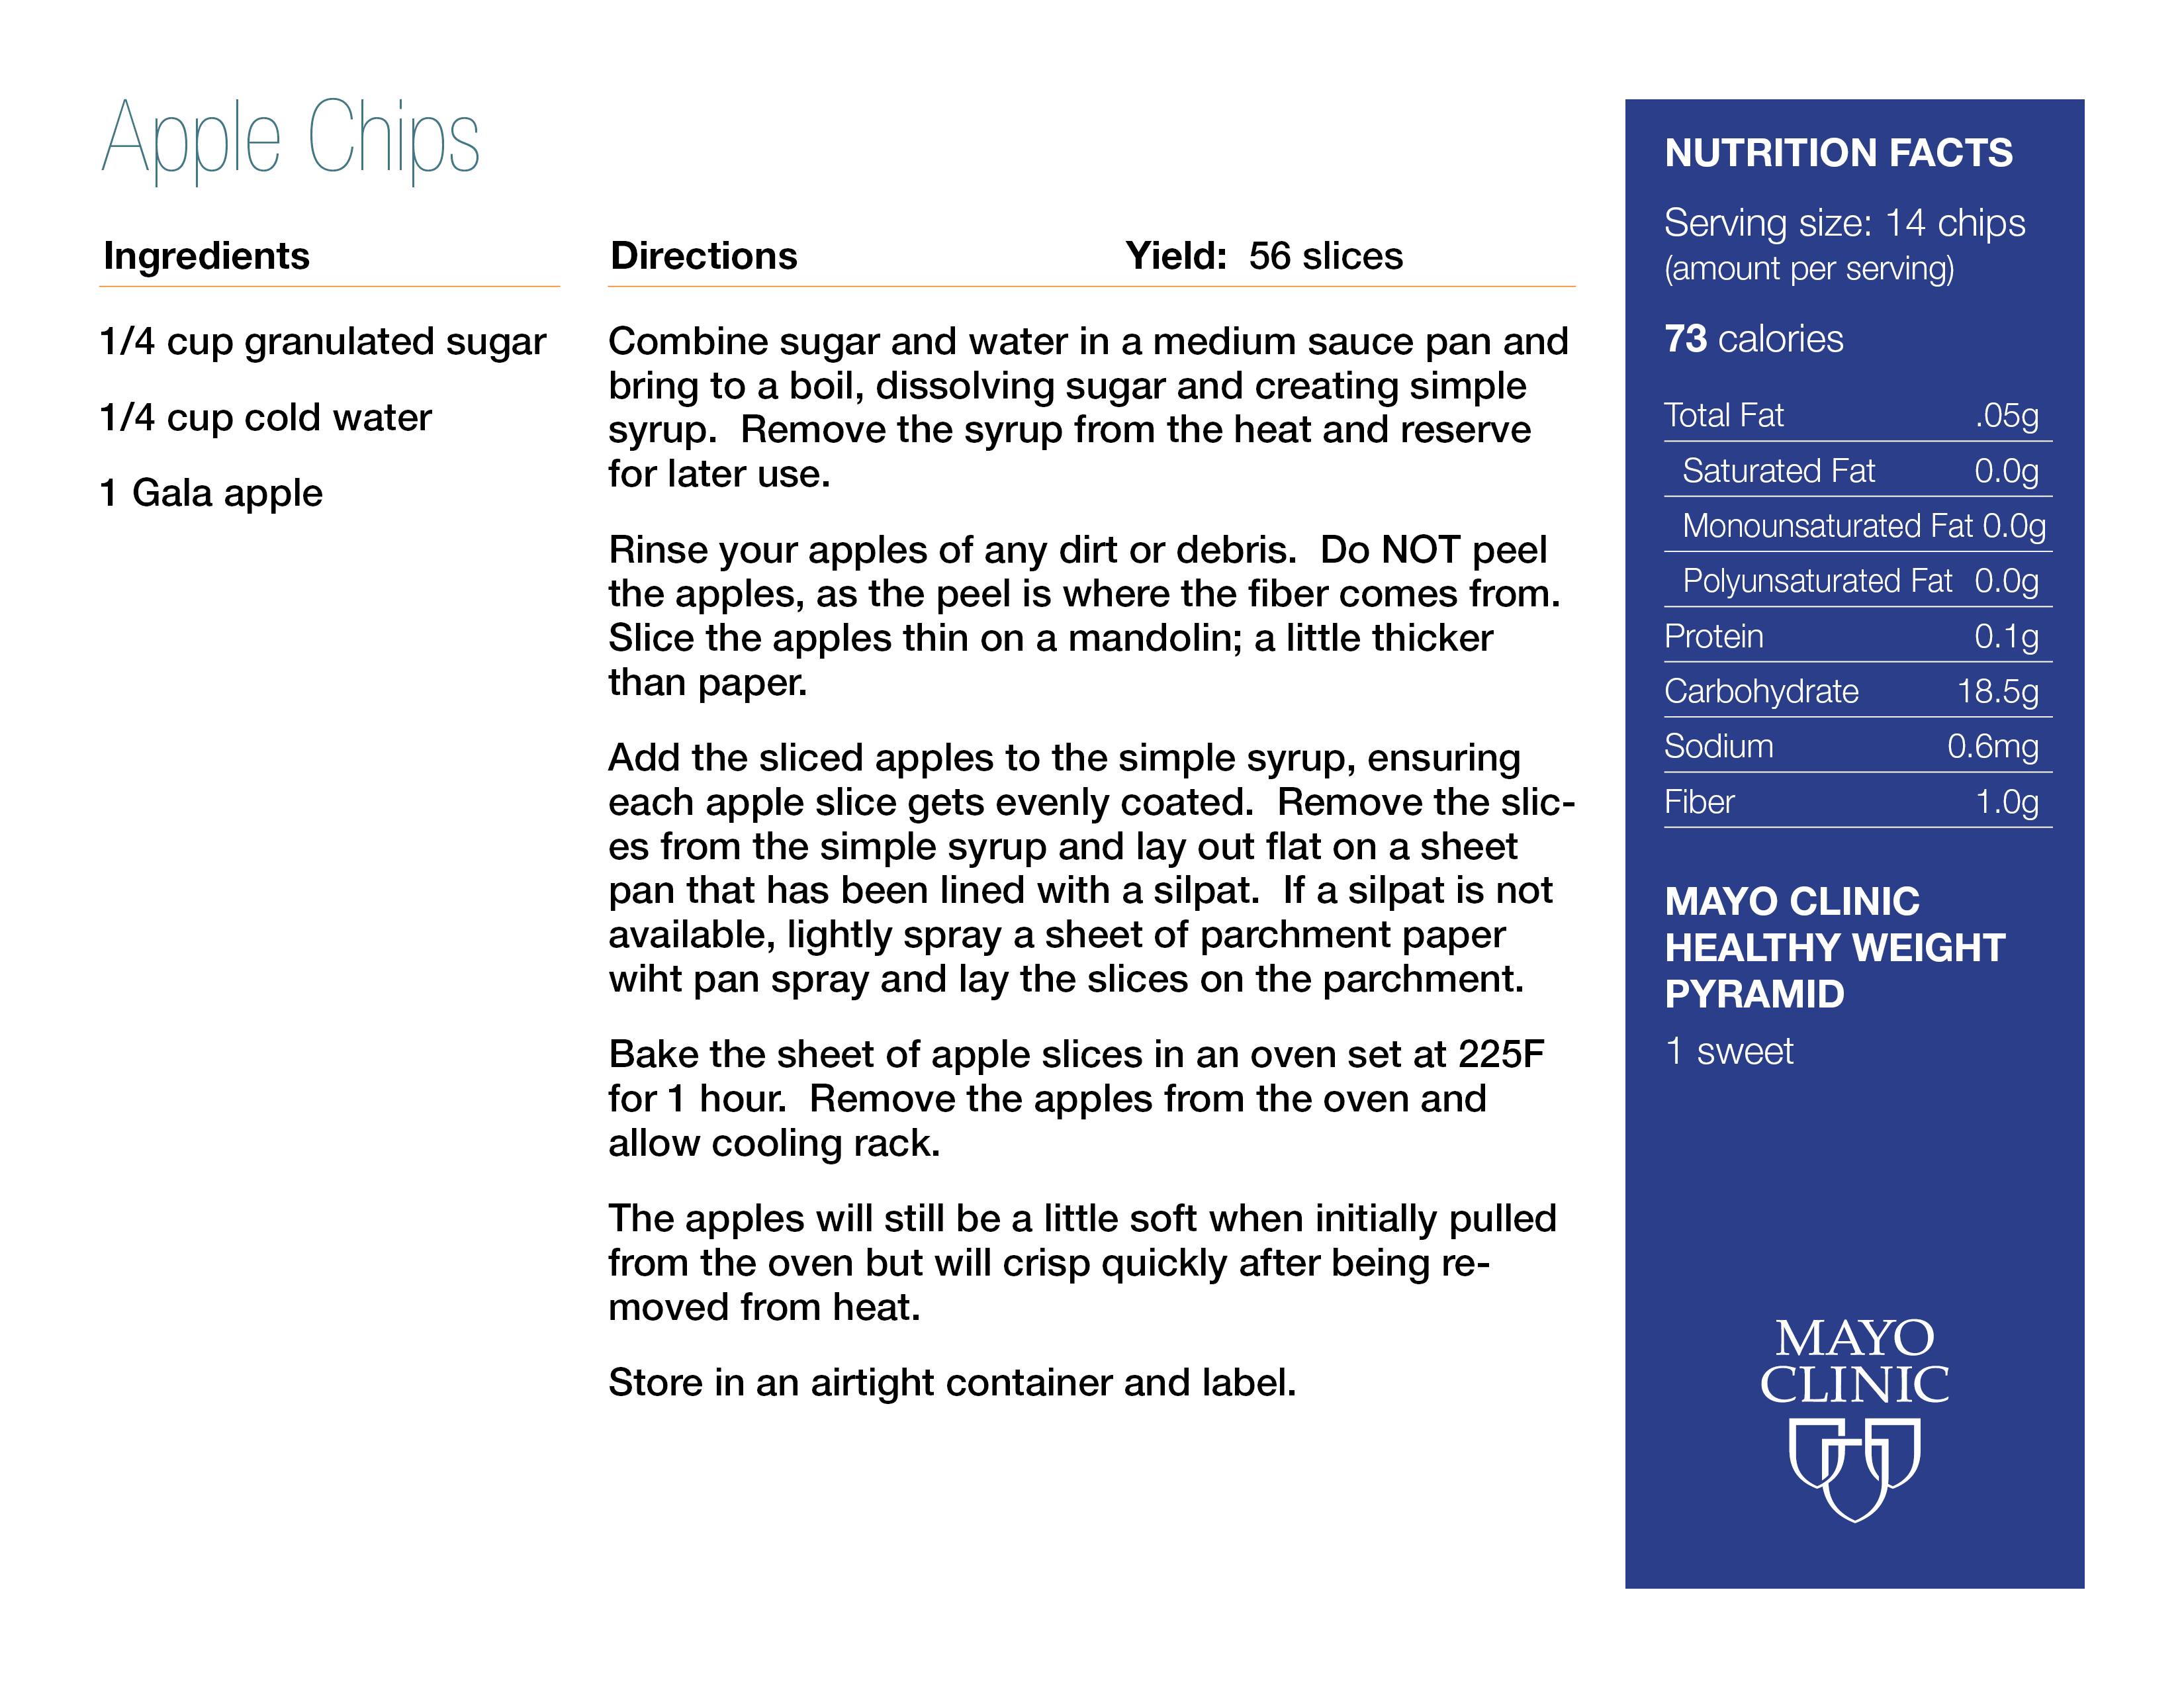 Sugar Dissolvin Into Water Png - Apple Chips Recipe | DAHLC